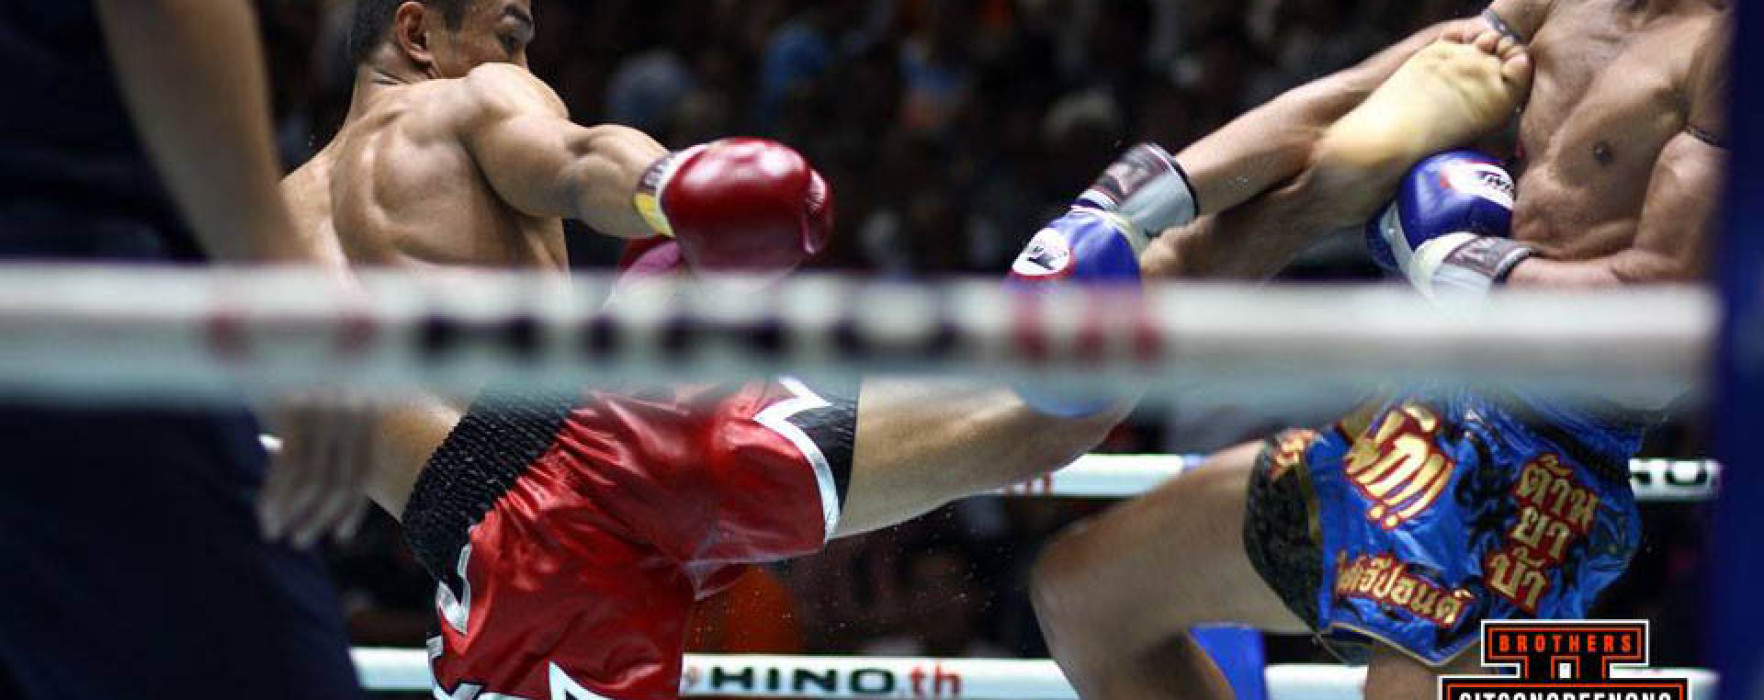 Video: Sitthichai Sitsongpenong vs Maruay Sitjepond – Lumpinee and Thailand Pat 147lbs titles – Lumpinee – 28/10/14